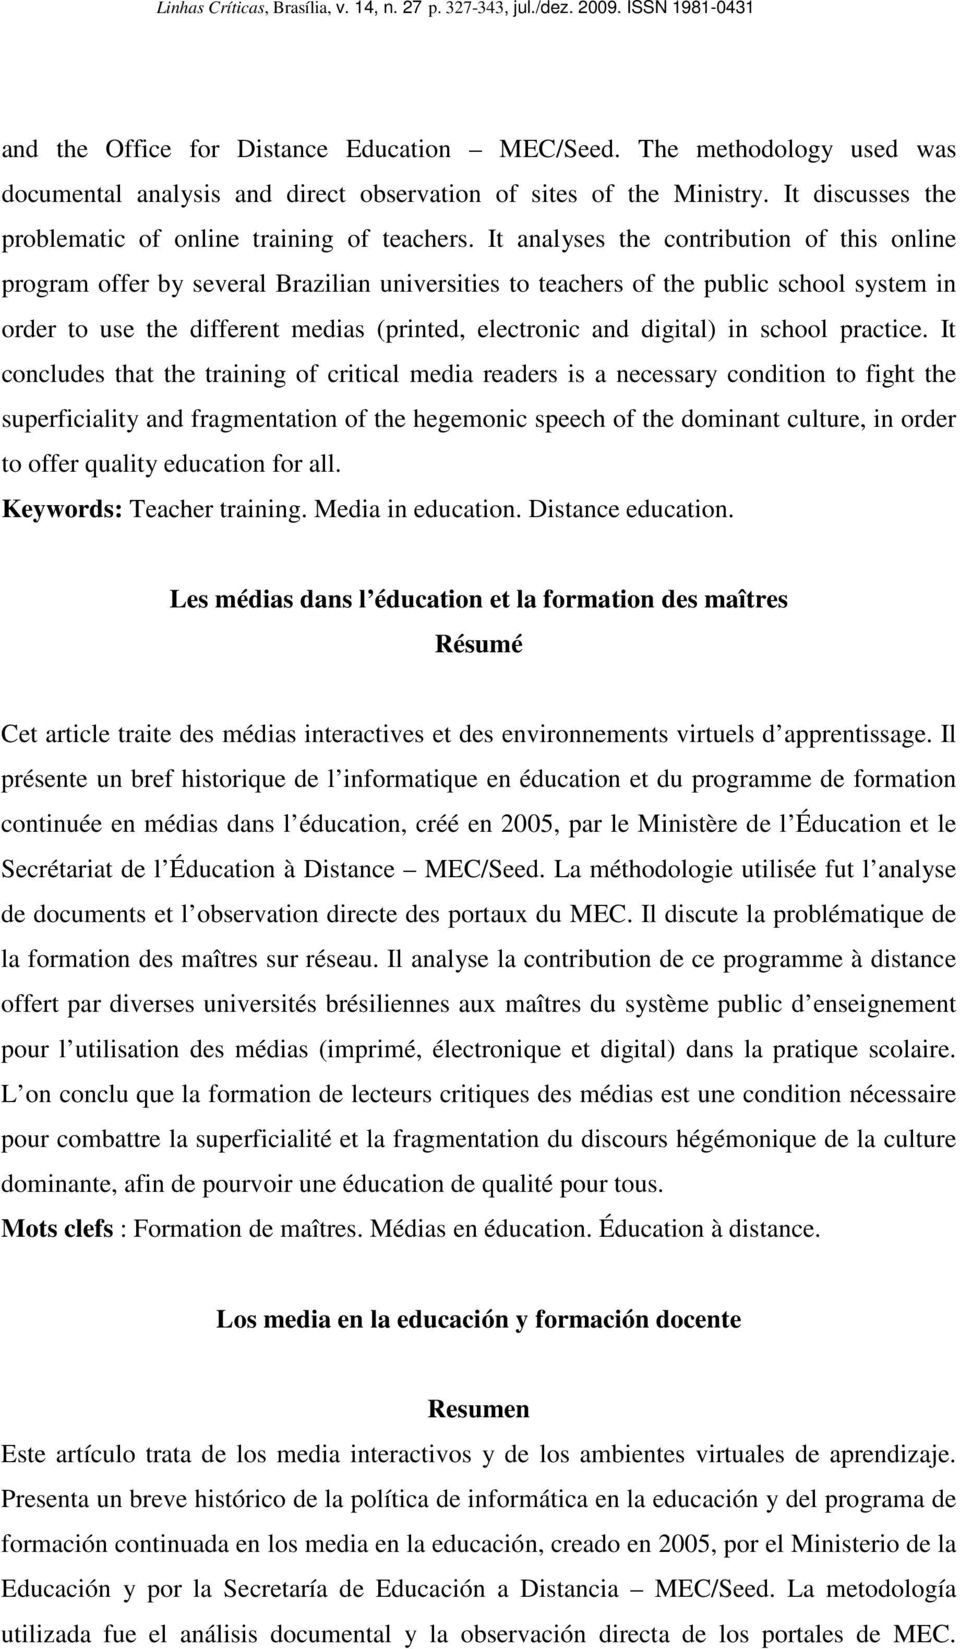 It analyses the contribution of this online program offer by several Brazilian universities to teachers of the public school system in order to use the different medias (printed, electronic and